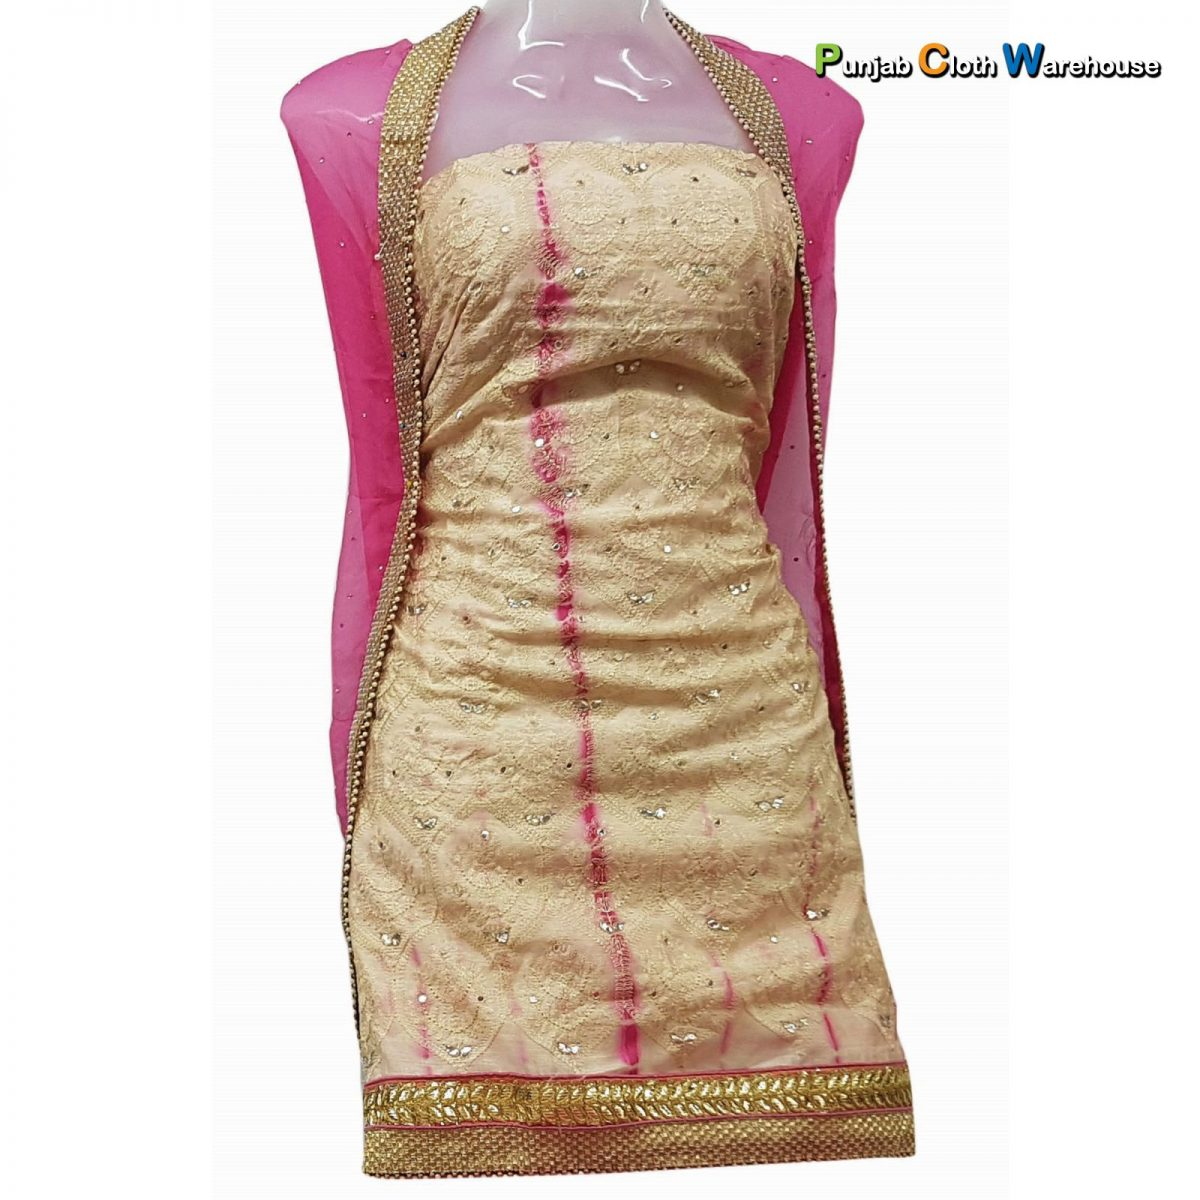 Ladies Suits - Cut Piece - Punjab Cloth Warehouse, Surrey (20)